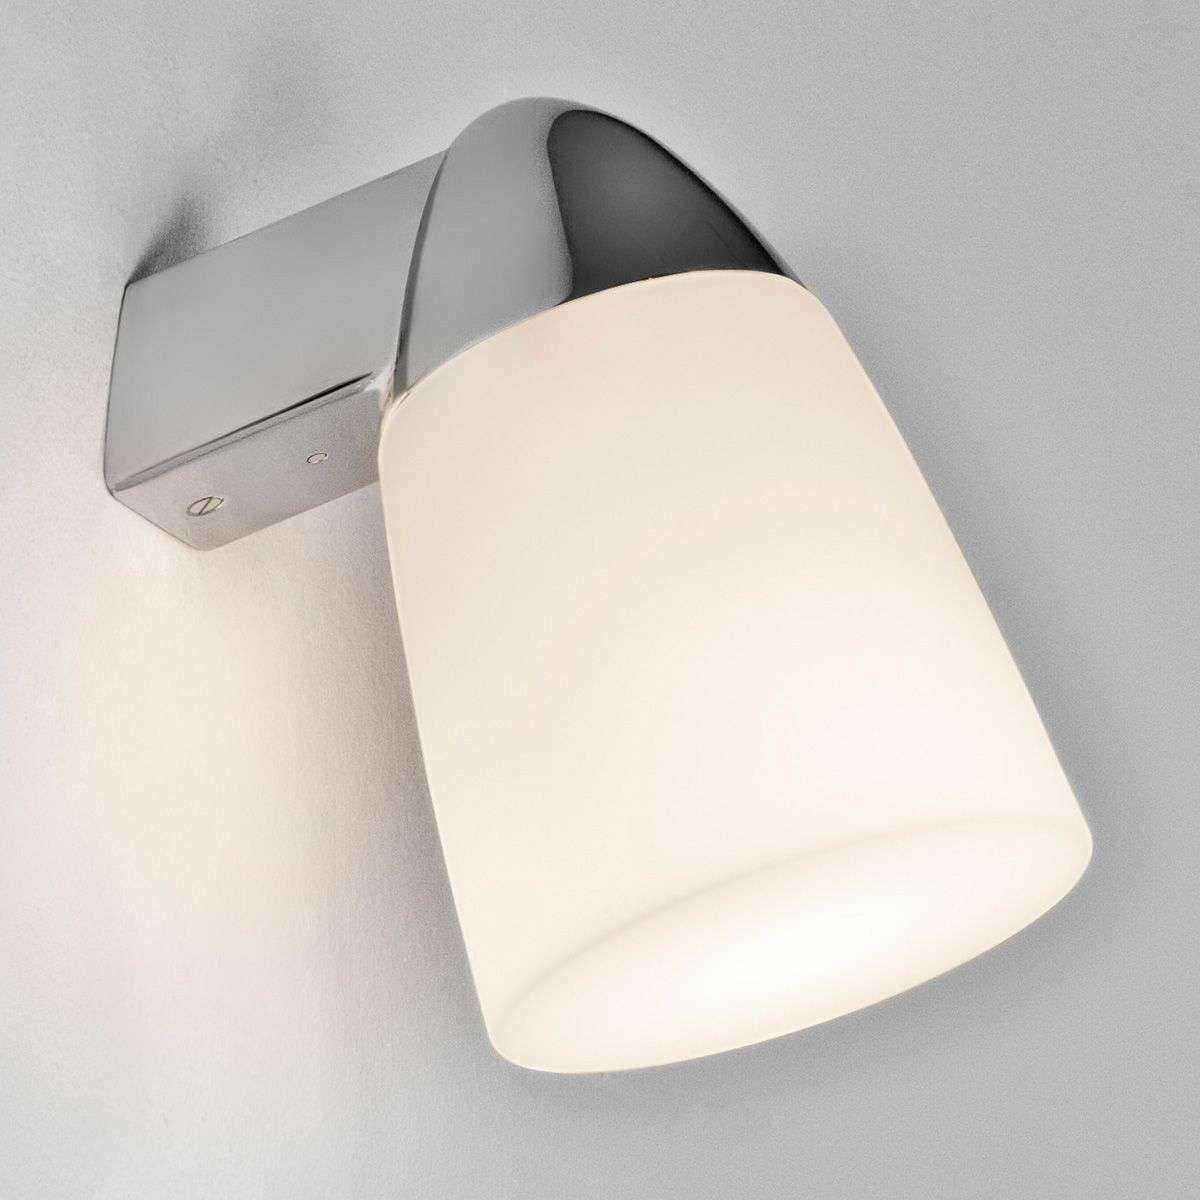 Lincoln Wall Light Classic-1020011-32